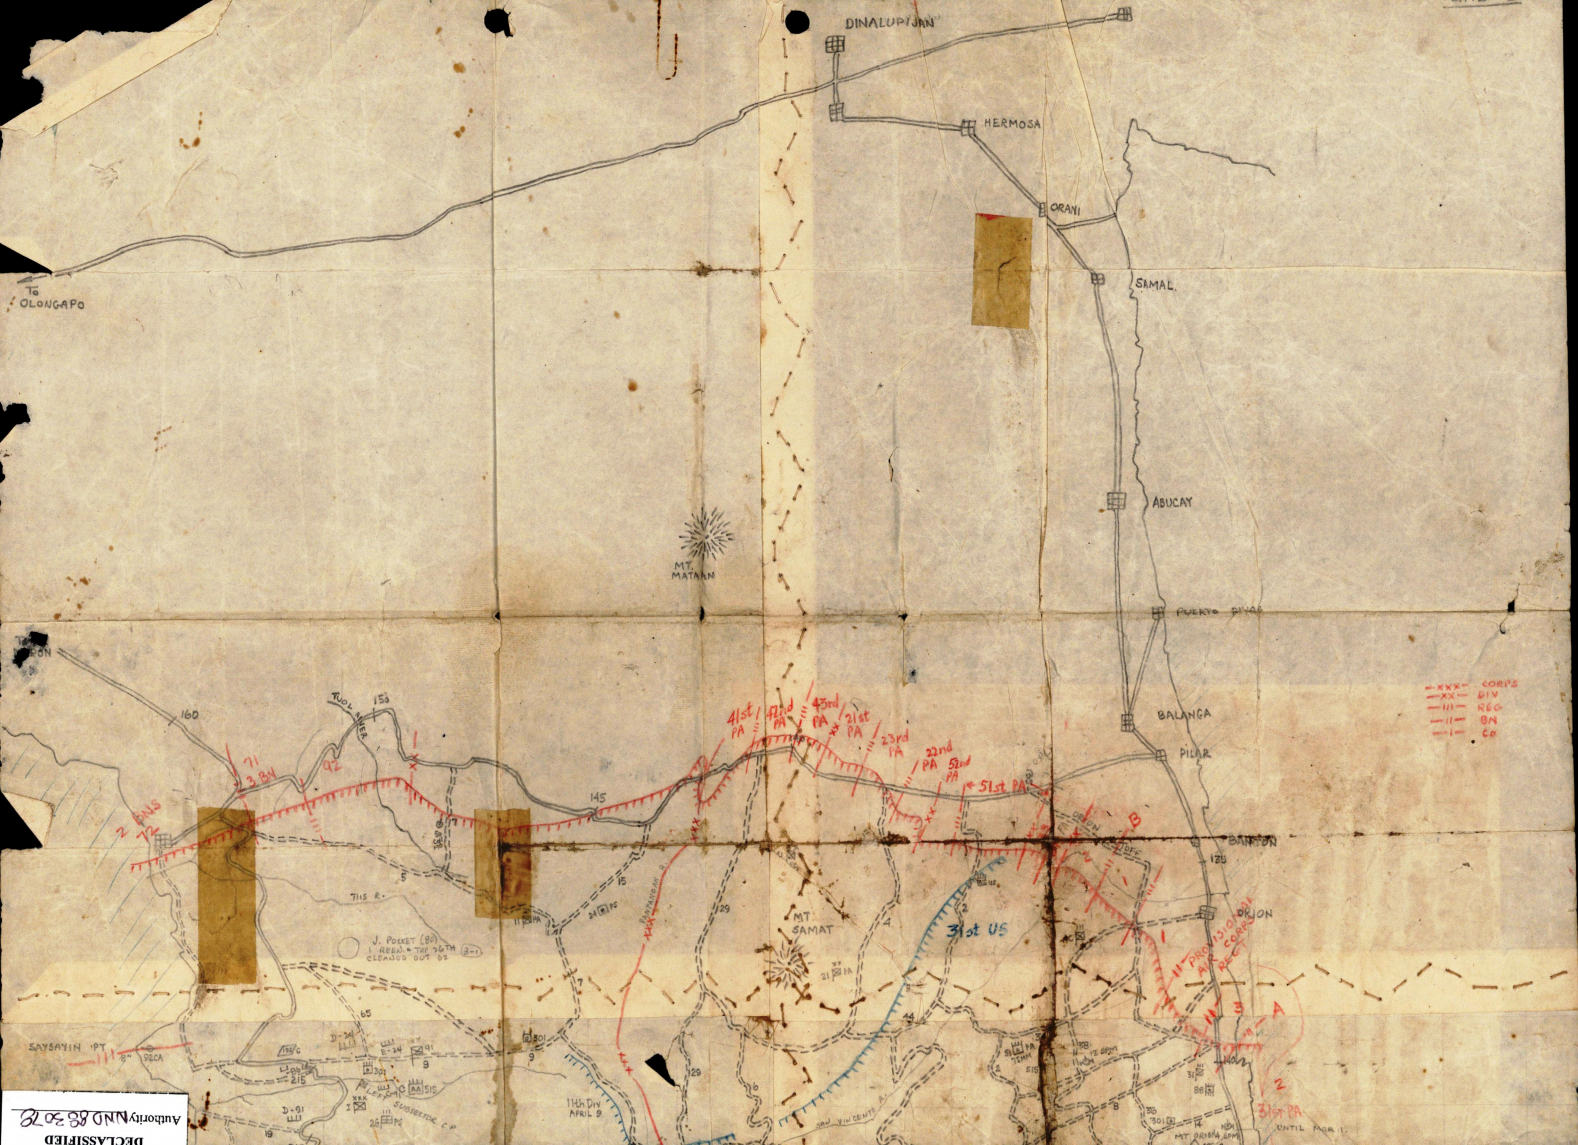 Maps and Sketches in Bataan Photo